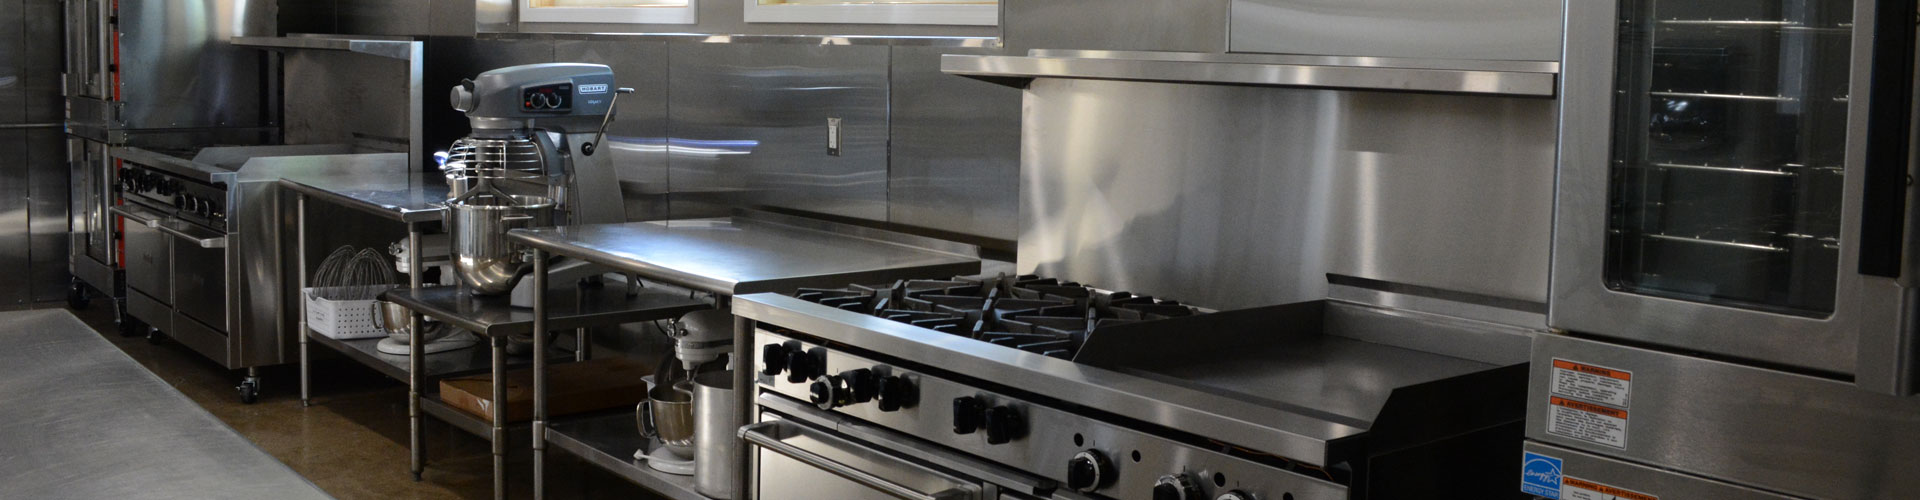 commercial kitchen for rent design ideas a1houston com commercial kitchens for rent square one fargo